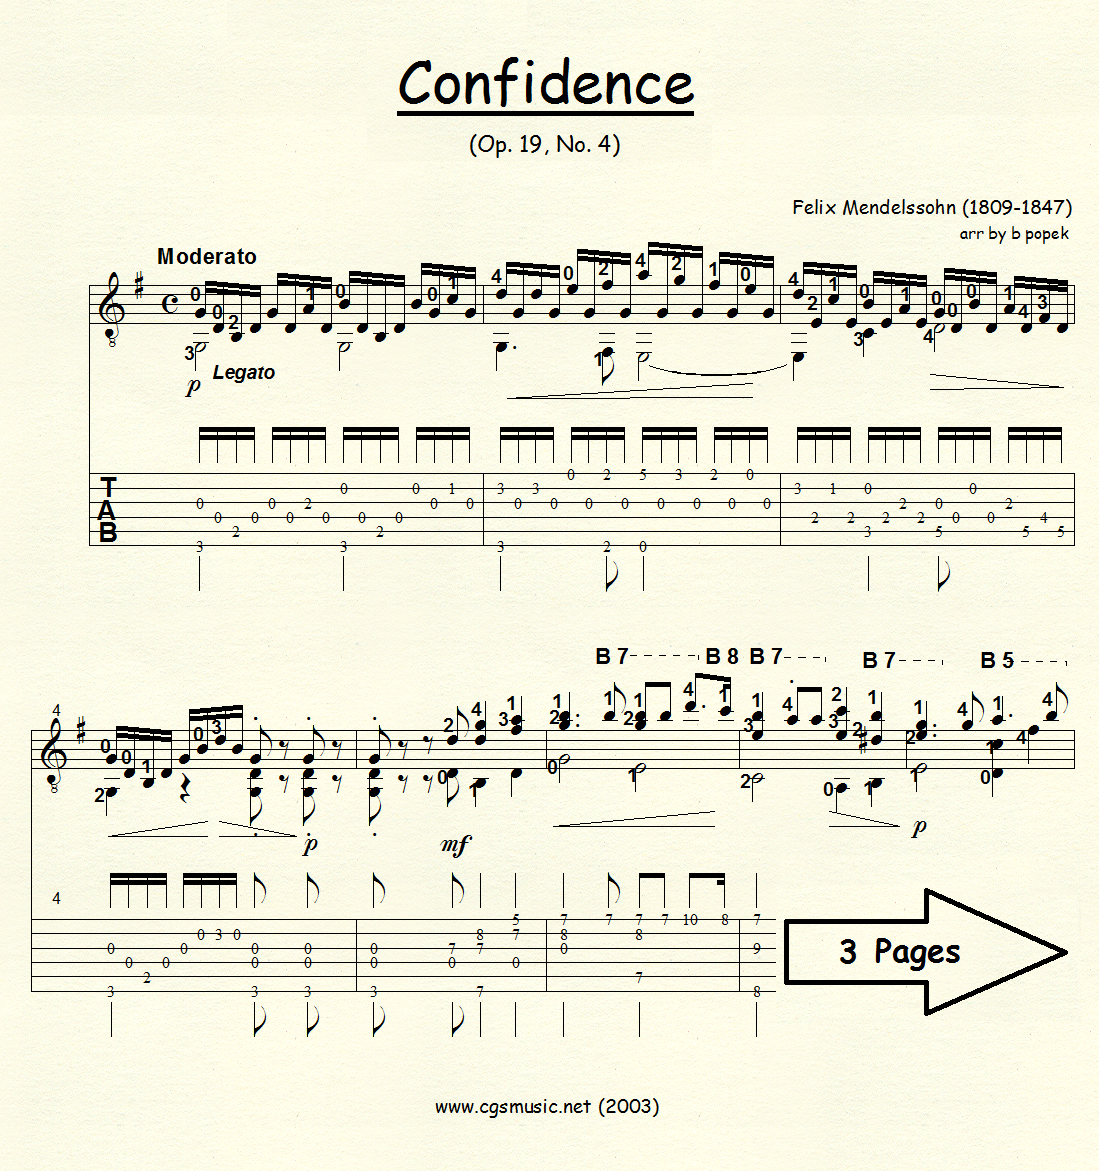 Confidence (Mendelssohn) for Classical Guitar in Tablature